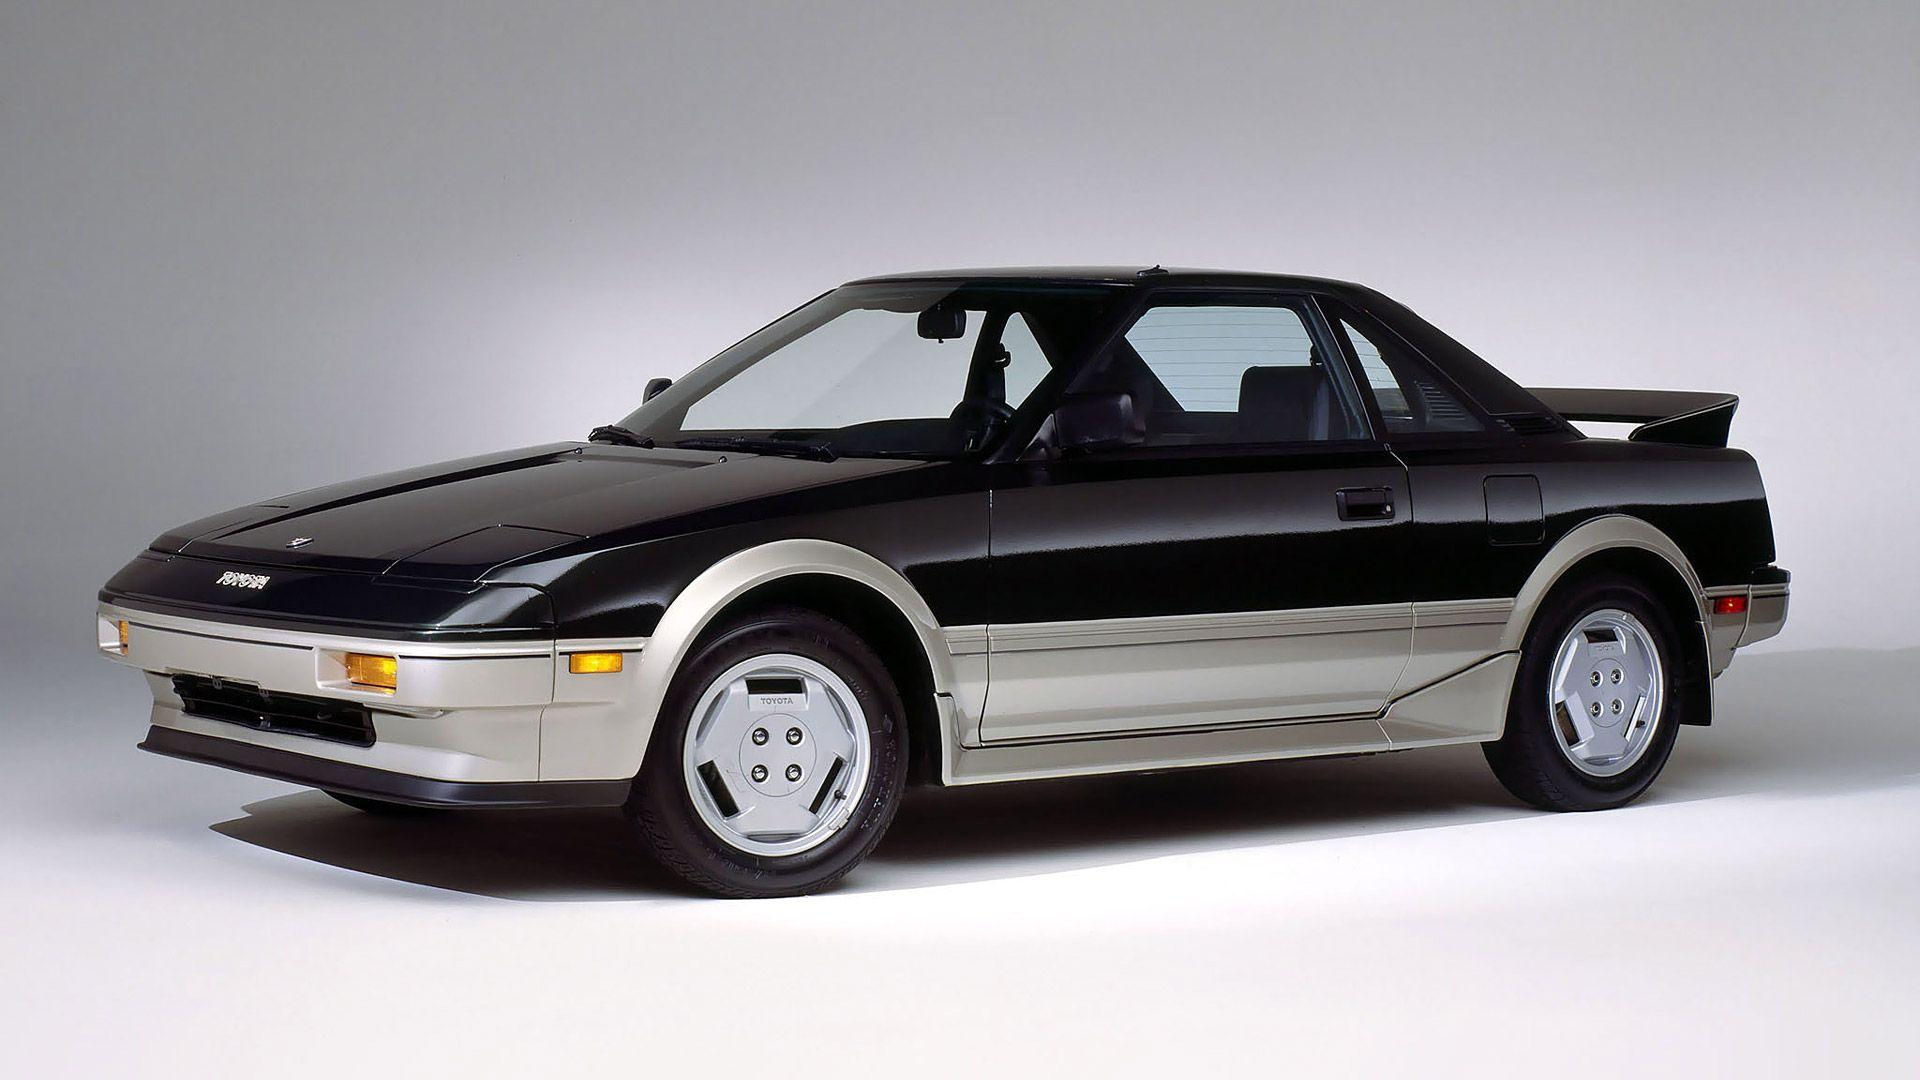 1985 Toyota MR2 Wallpapers & HD Image